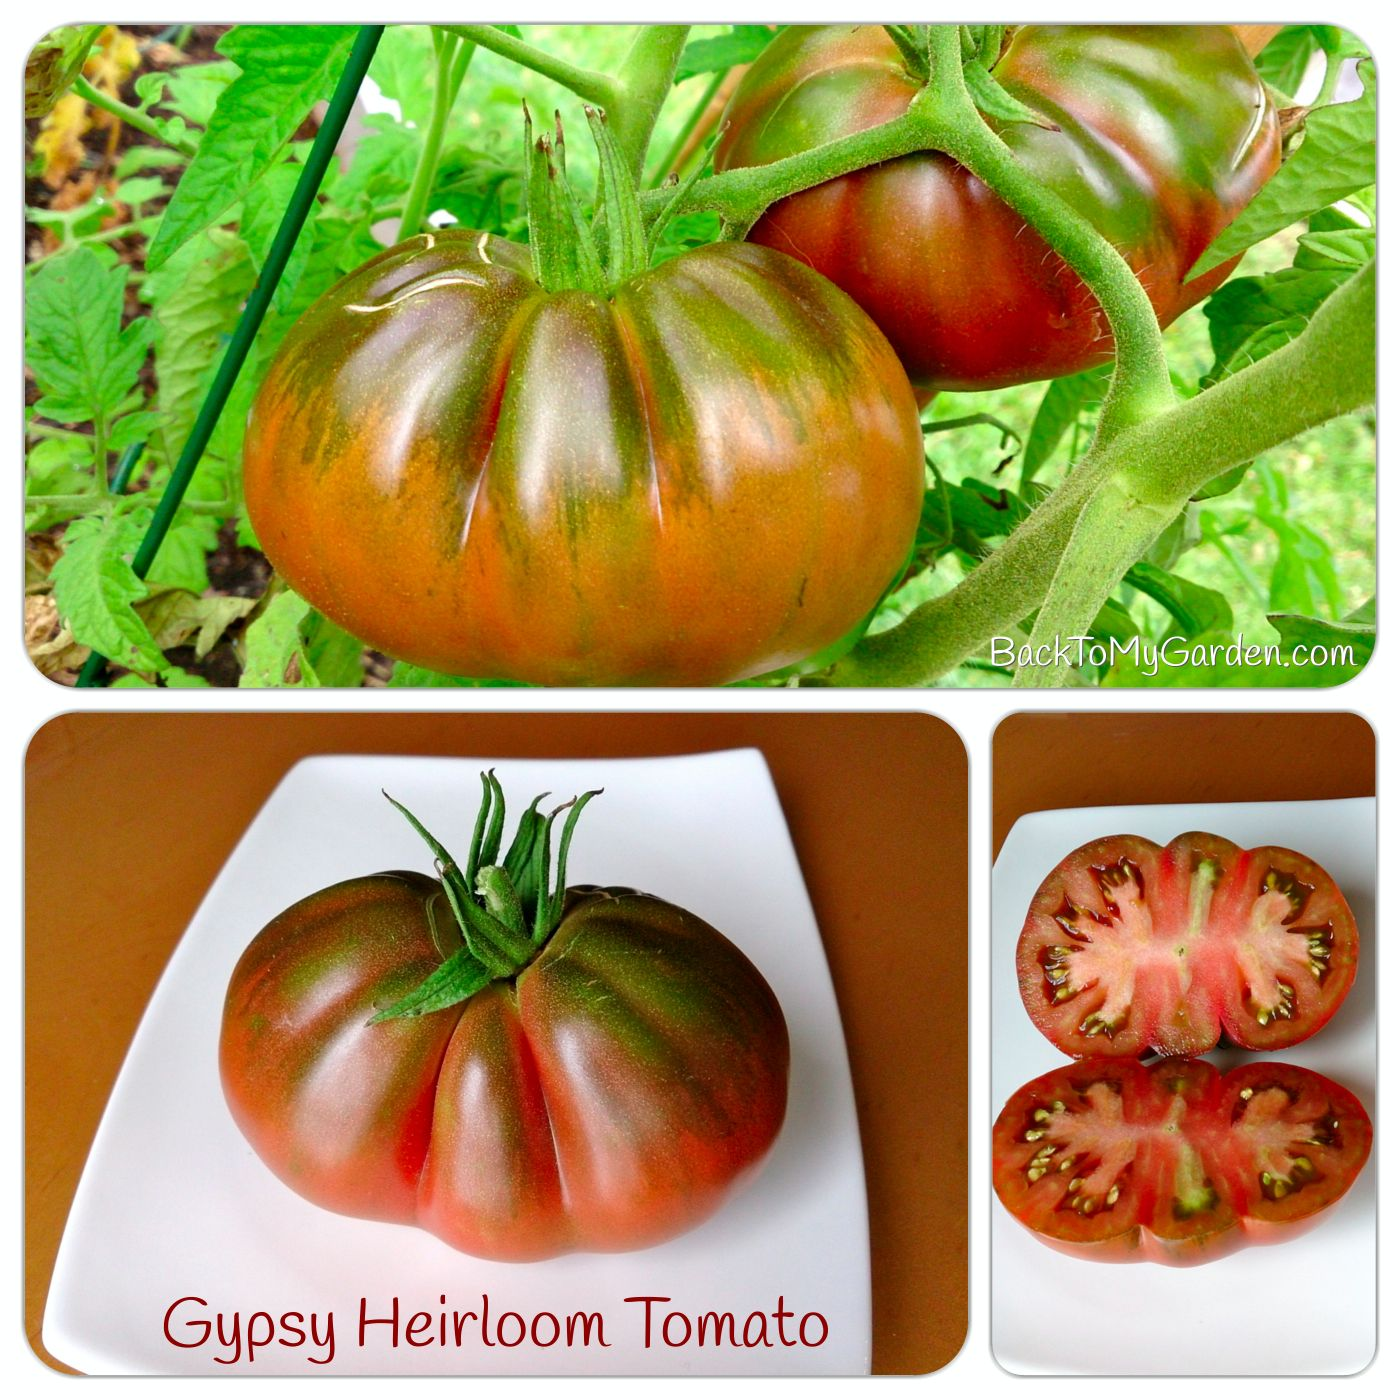 Nearly 40 passionate gardeners participated and shared their best ideas for helping you grow amazing heirloom tomatoes in pots, bags, patio containers, raised beds, even milk crates!  We have a variety of zones represented and several countries.  This list of gardening experts is invaluable. Common Sense Homesteading is honored to be included in this list!